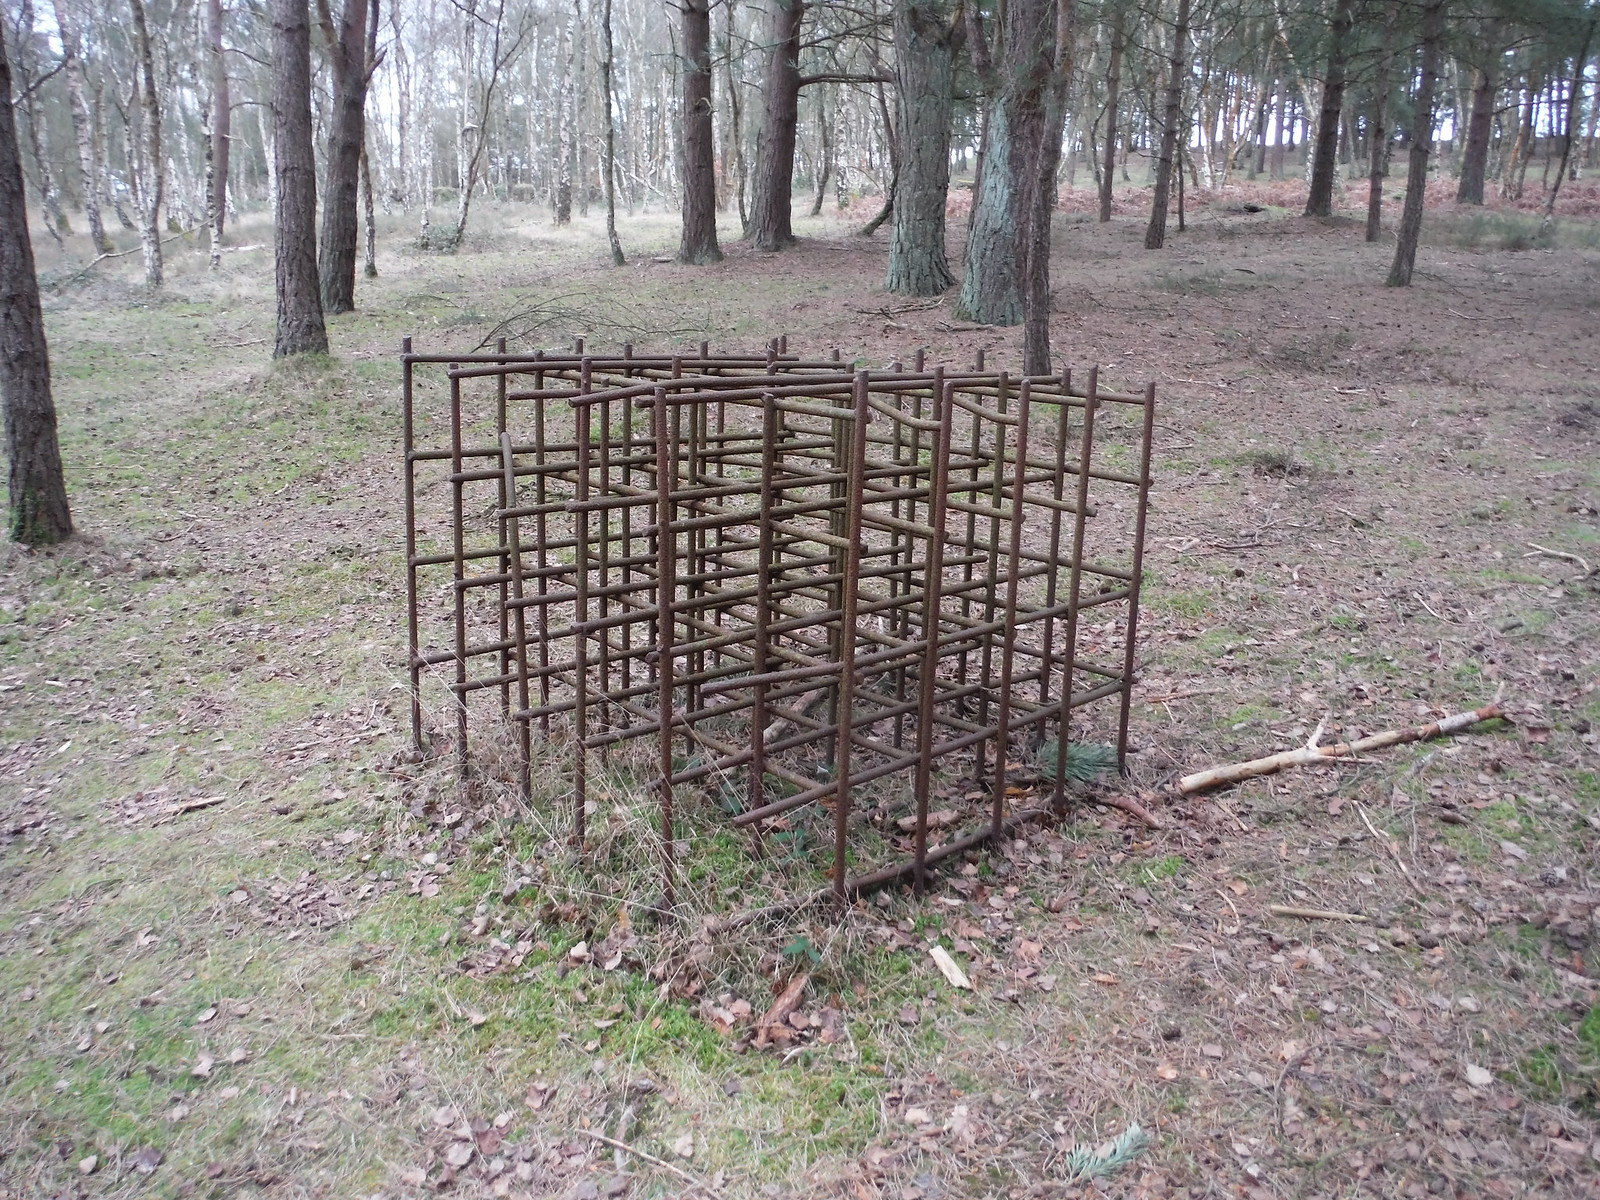 Cubic Steel Structure, The Atlantic Wall, Hankley Common SWC Walk 144 Haslemere to Farnham - Atlantic Wall Extension